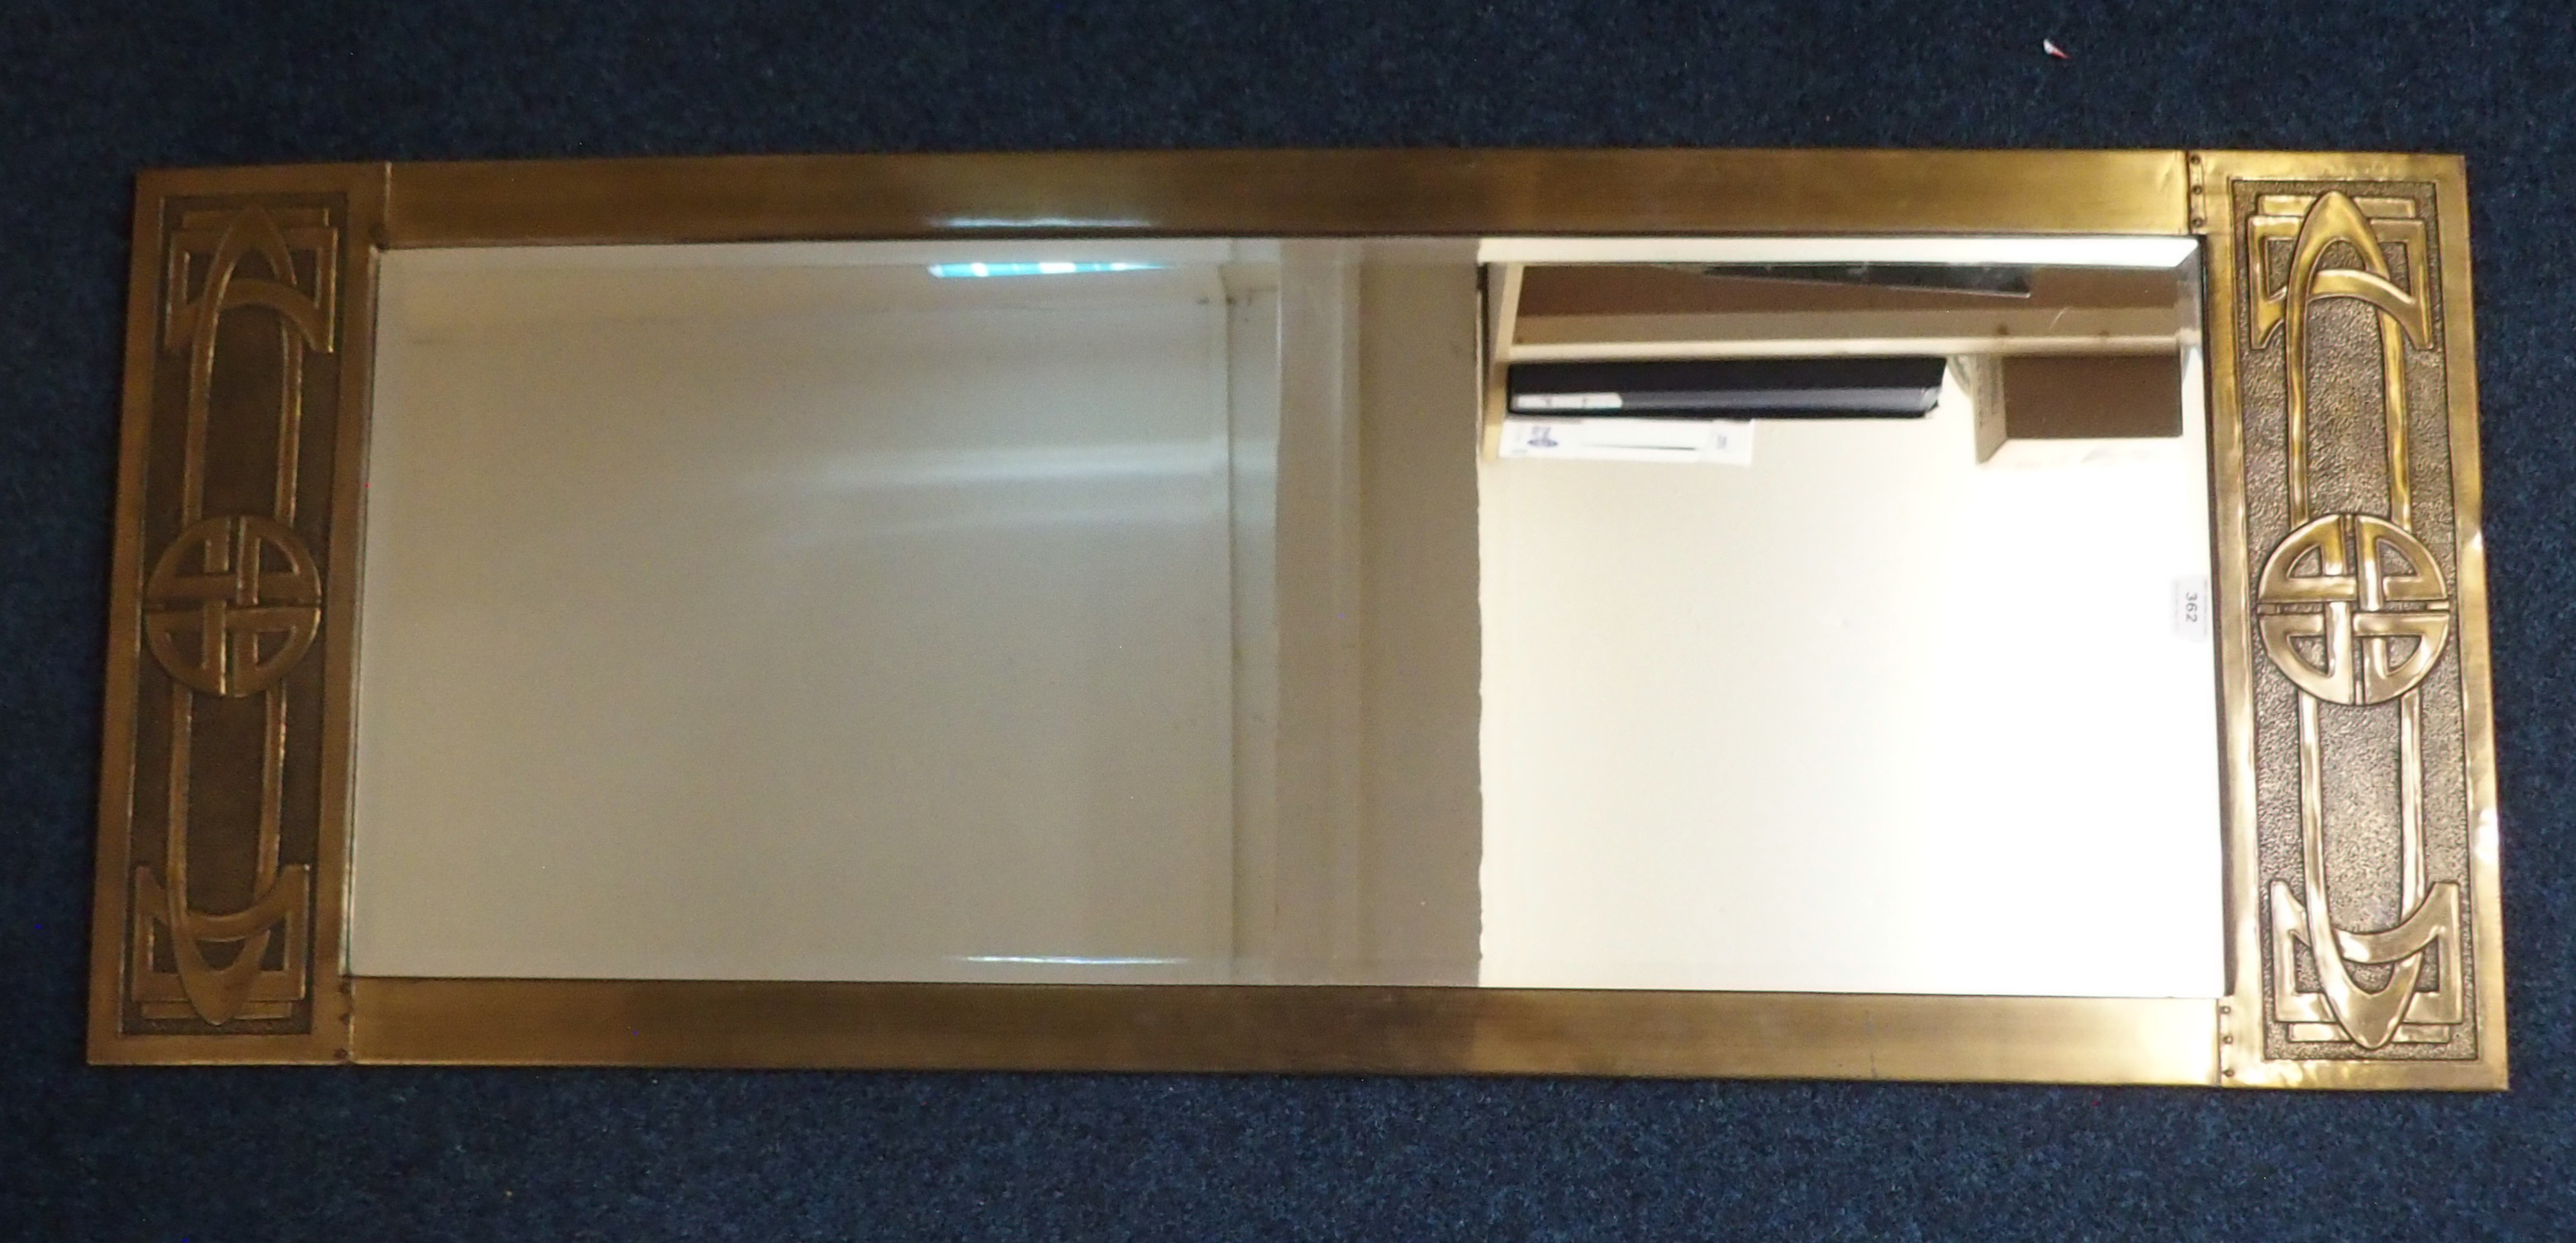 A GLASGOW SCHOOL STYLE BRASS FRAMED MIRROR of rectangular shape with knotwork decoration, 54cm x - Image 5 of 5